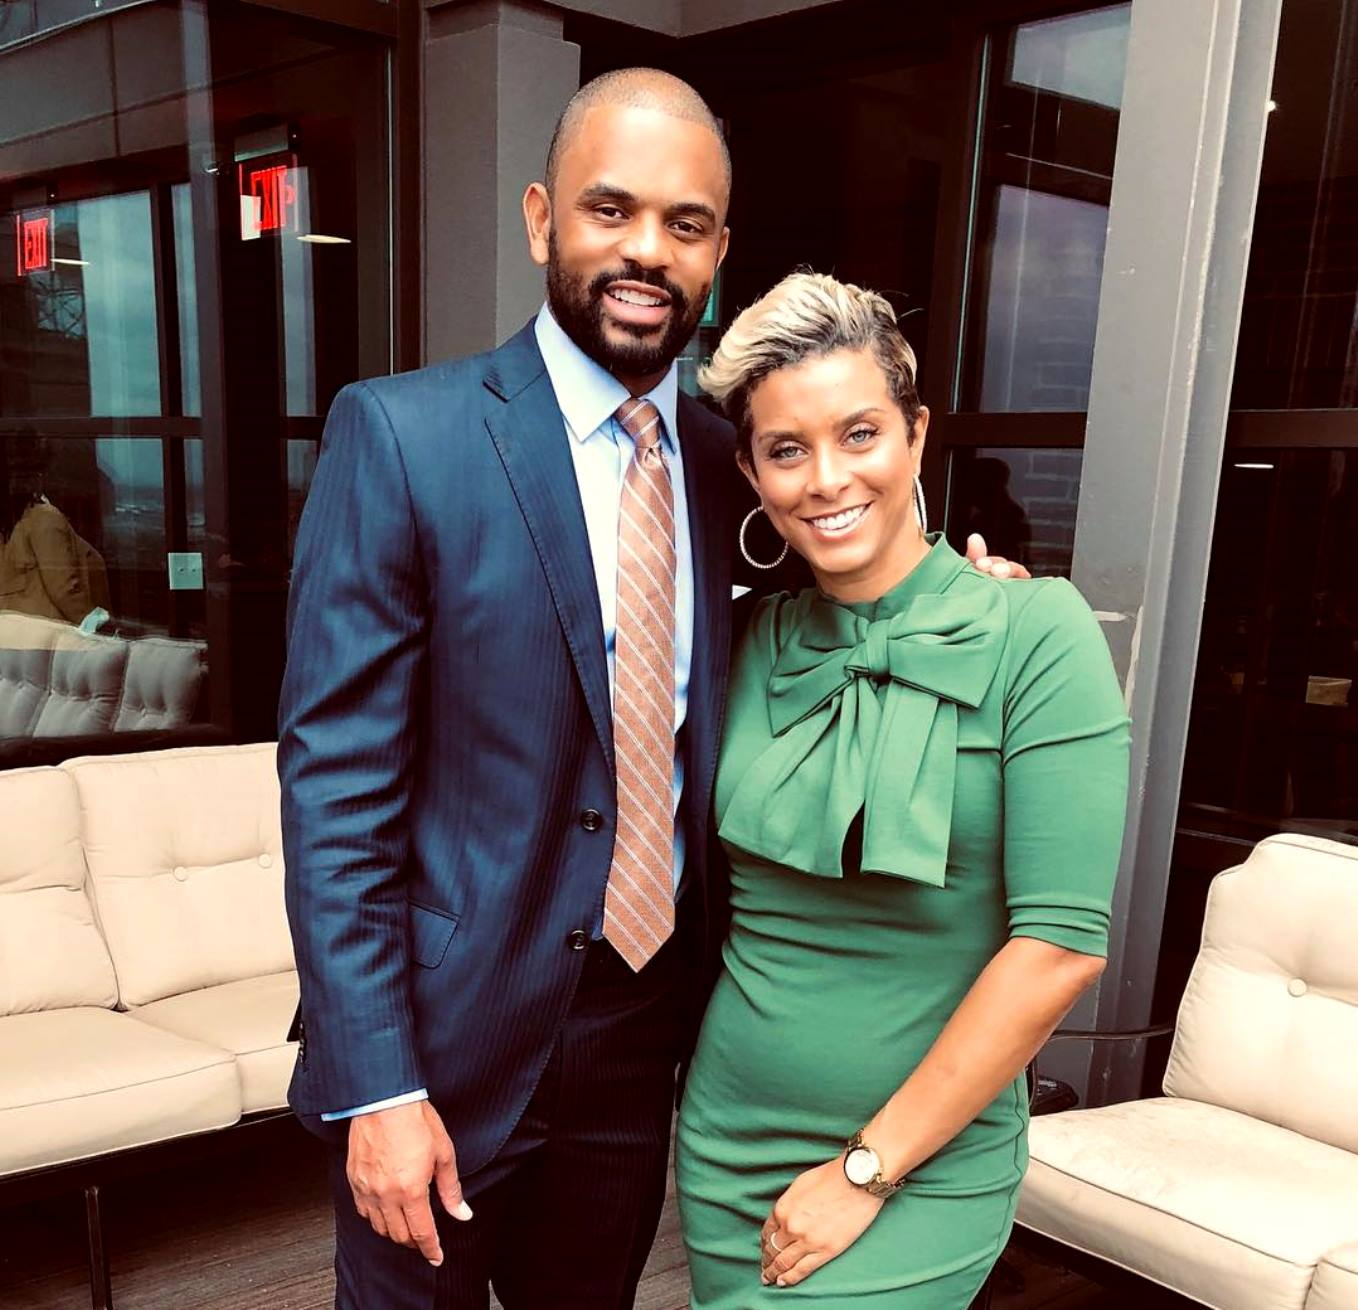 VIDEO: RHOP Star Robyn Dixon Gets Engaged to Juan Dixon! See a Video of Juan's Sweet Proposal and Robyn's Engagement Ring